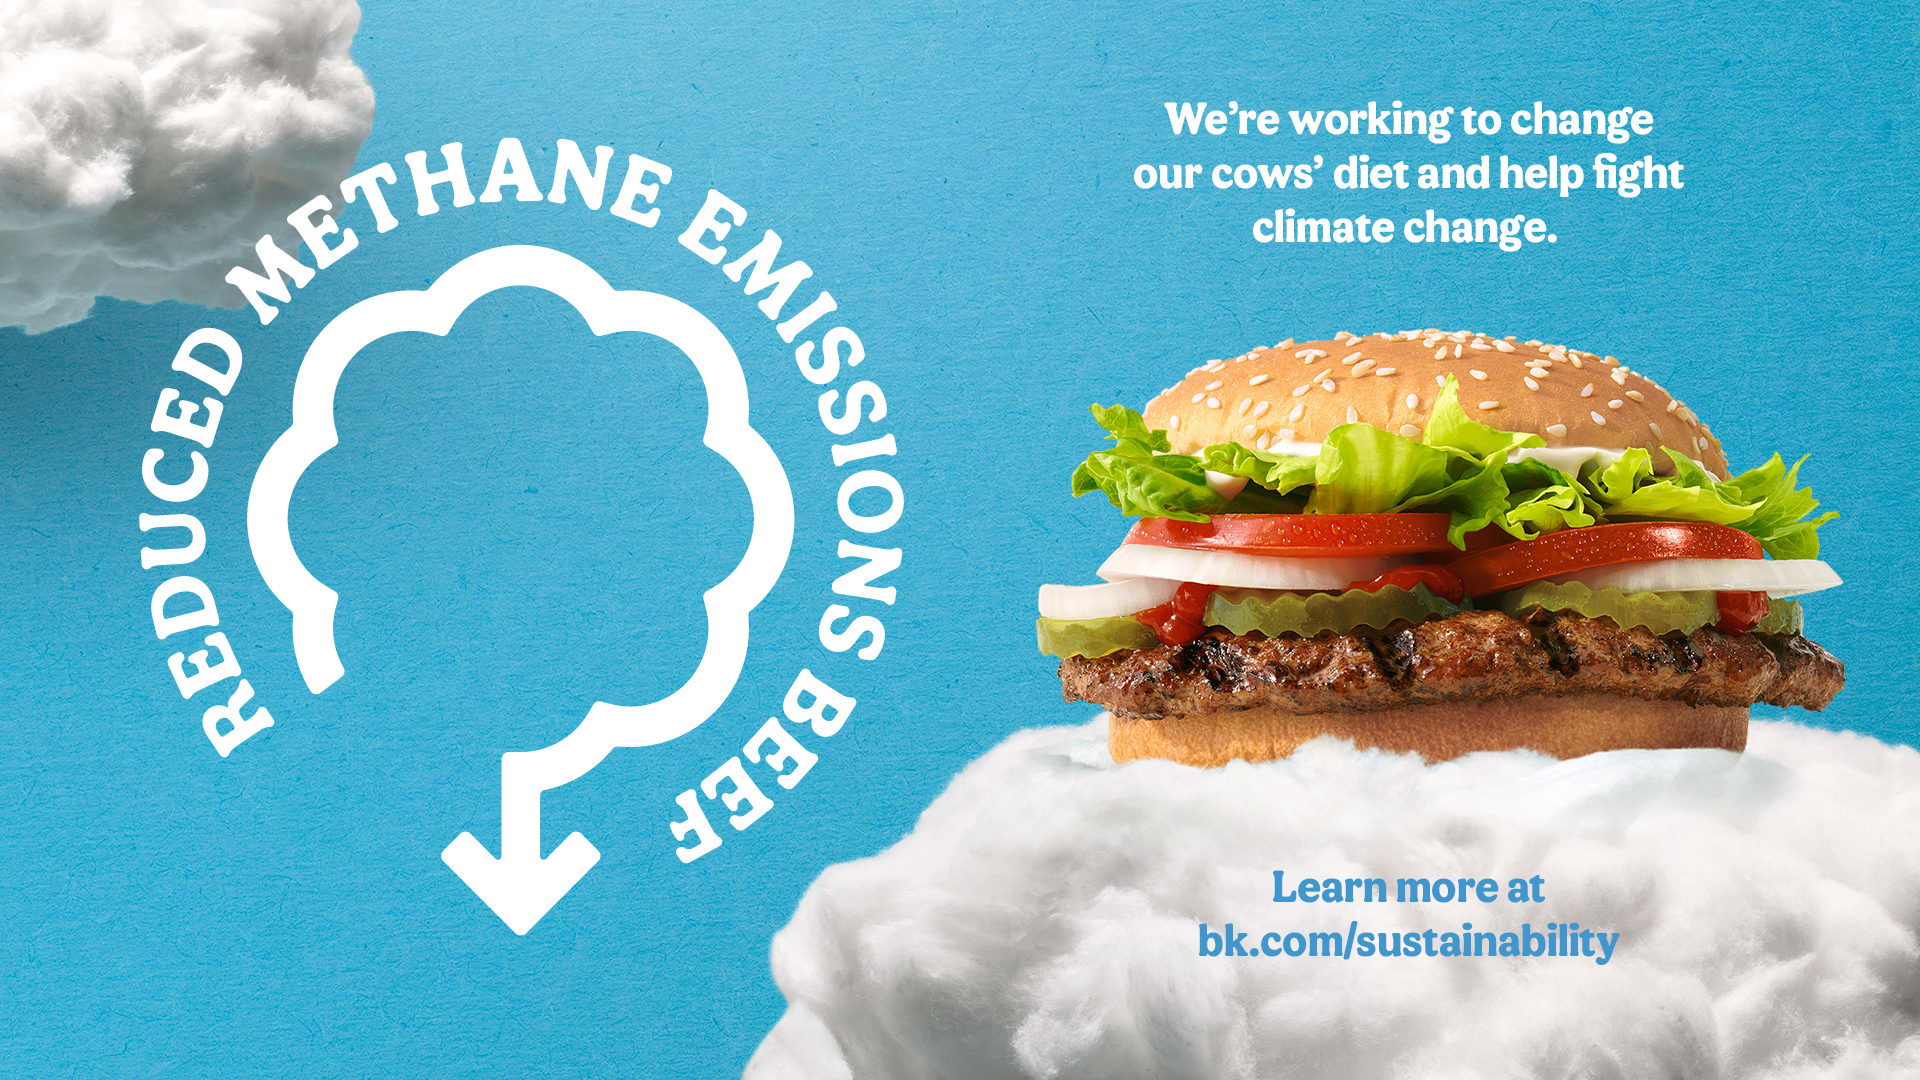 Burger King is selling a burger made from cows on low-methane diet